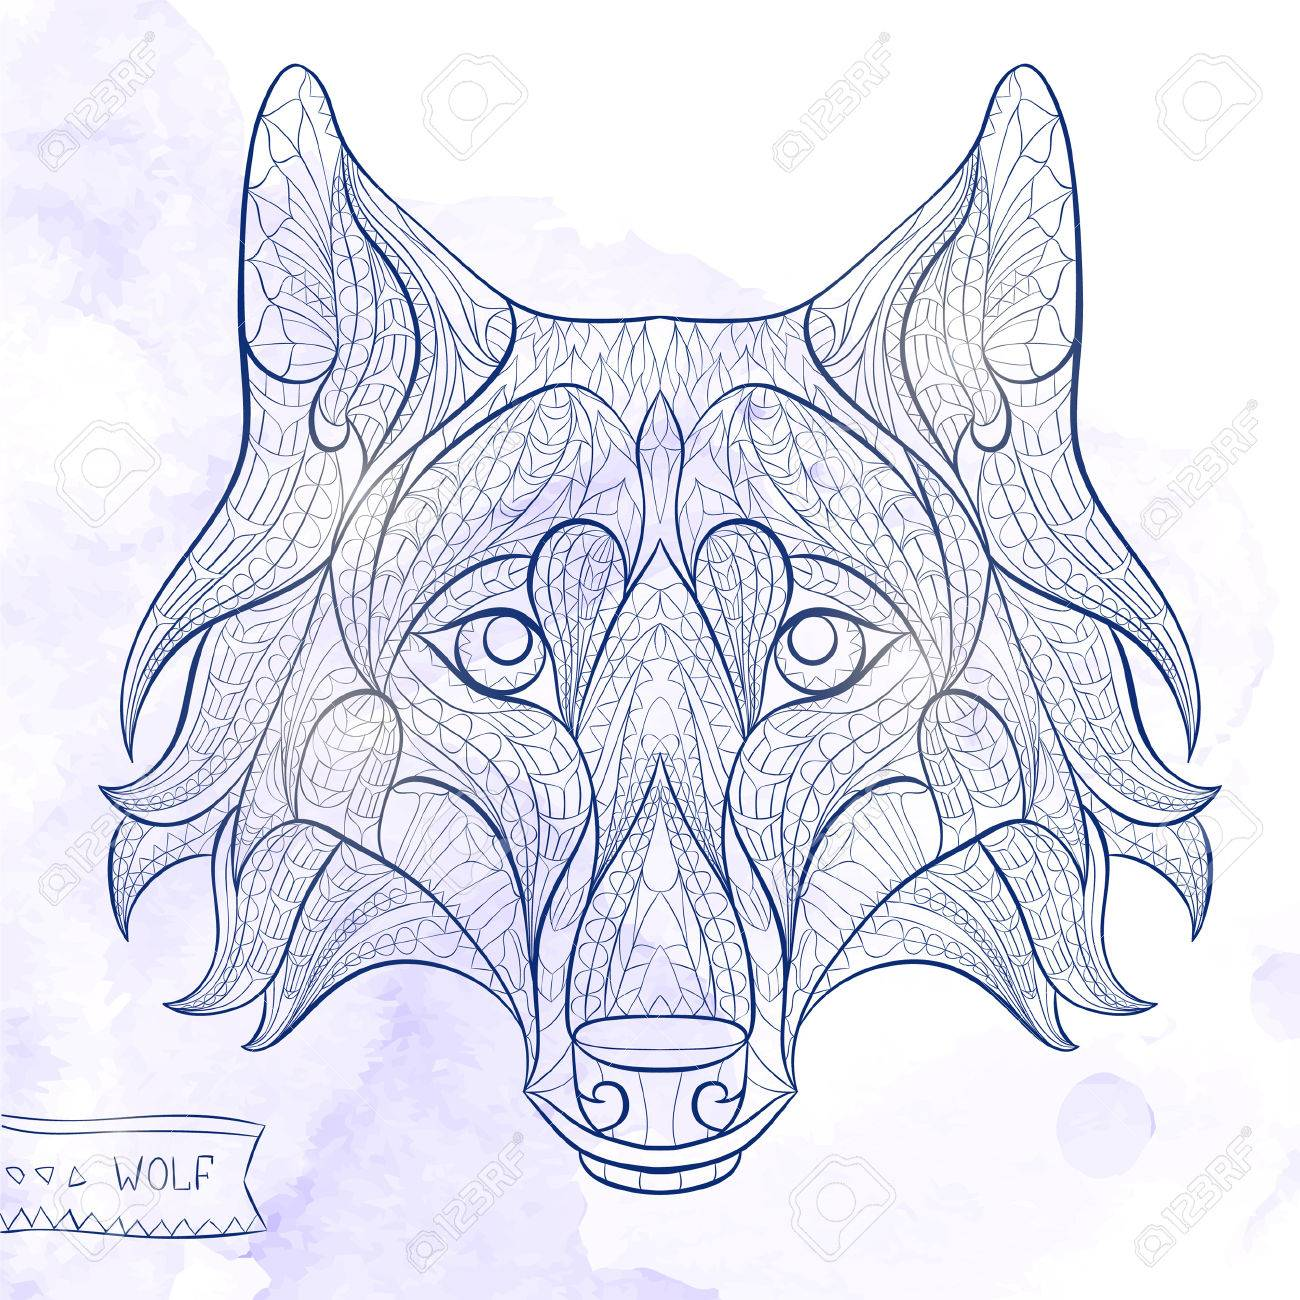 Patterned head of the wolf on the grunge background. African / indian / totem / tattoo design. It may be used for design of a t-shirt, bag, postcard, a poster and so on. - 44179716